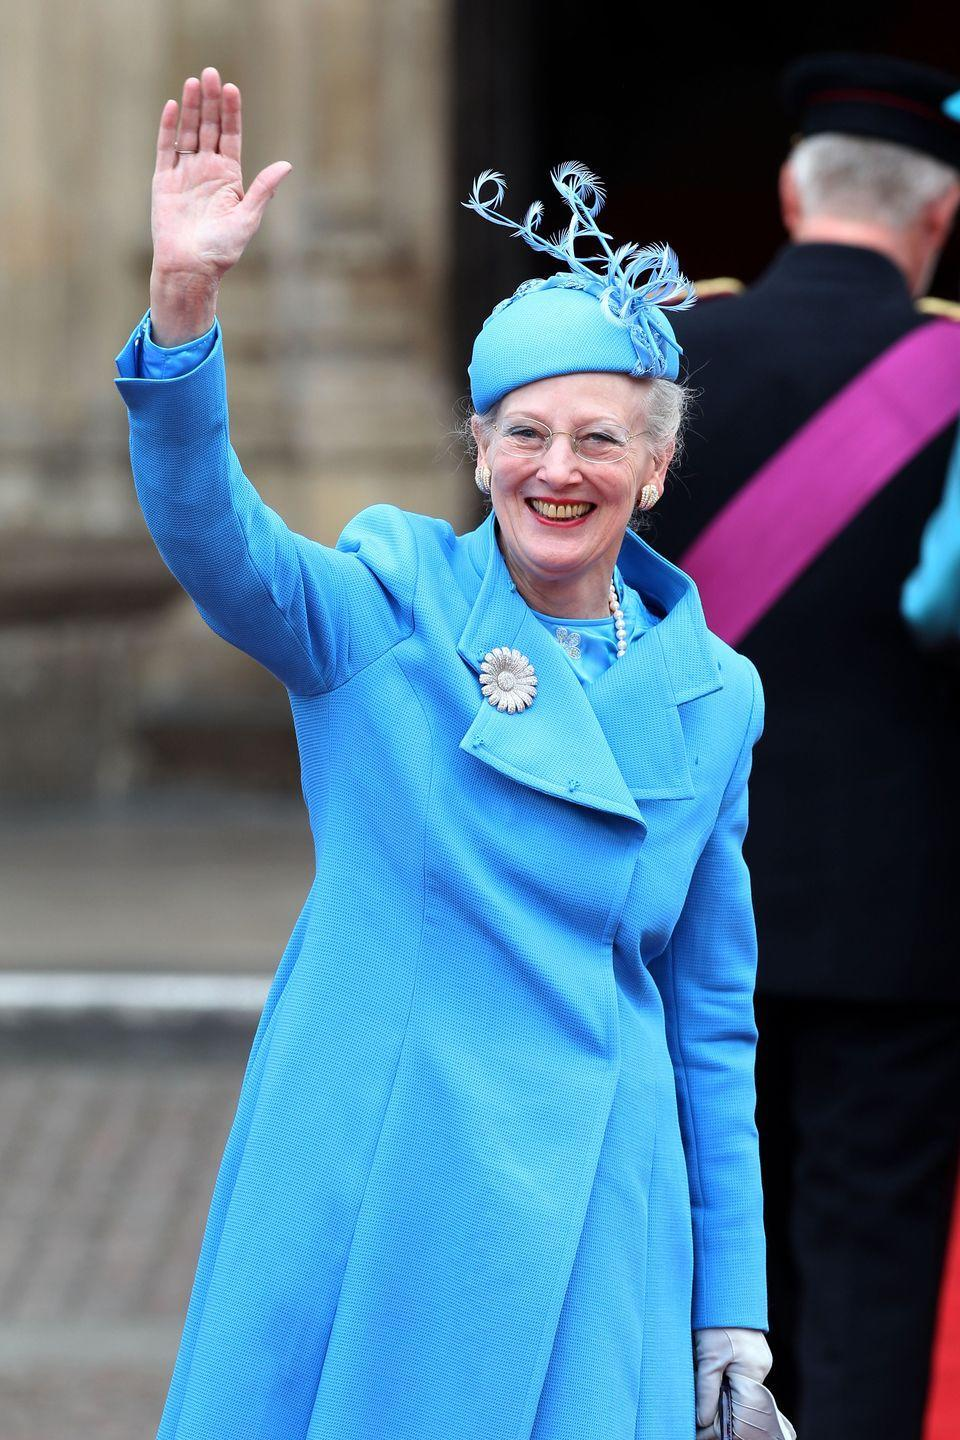 <p>Queen Margrethe II of Denmark in a jaunty blue cap at the royal wedding.</p>